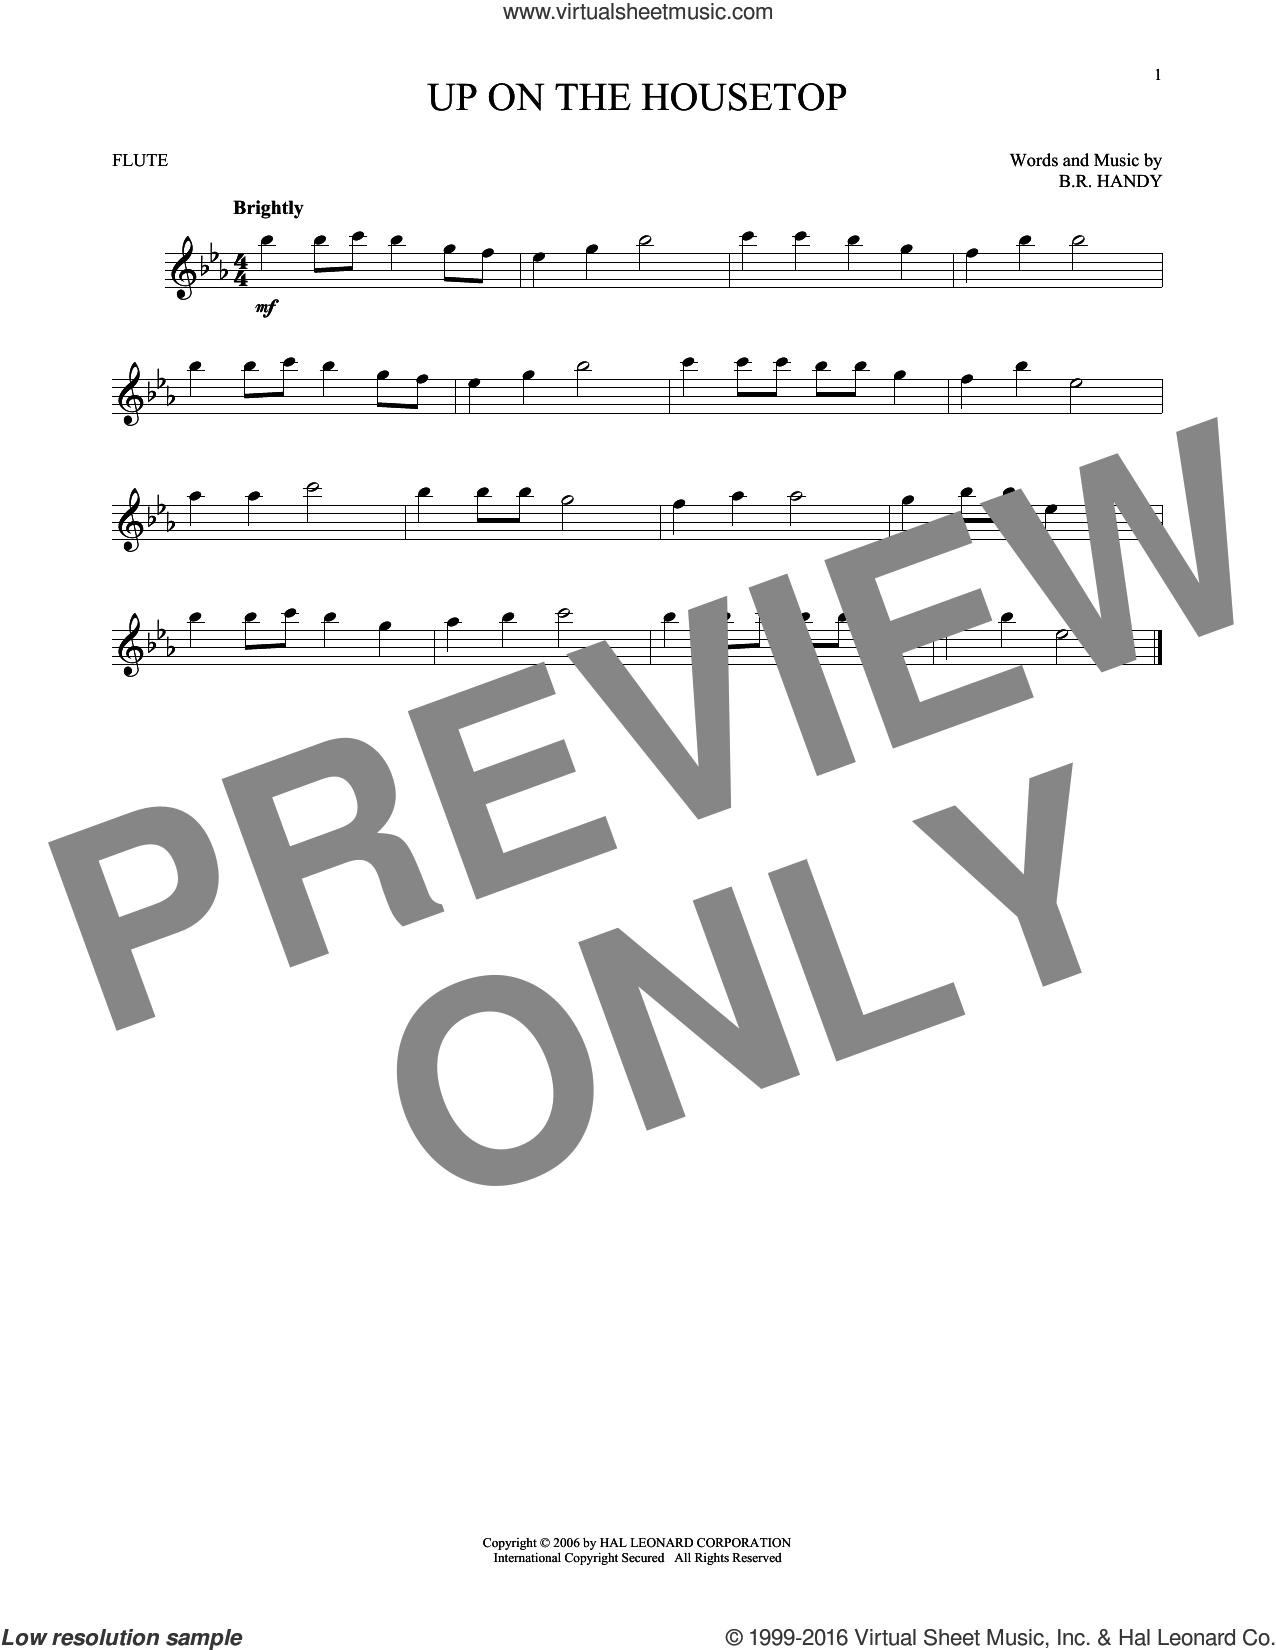 Up On The Housetop sheet music for flute solo by Benjamin Hanby. Score Image Preview.